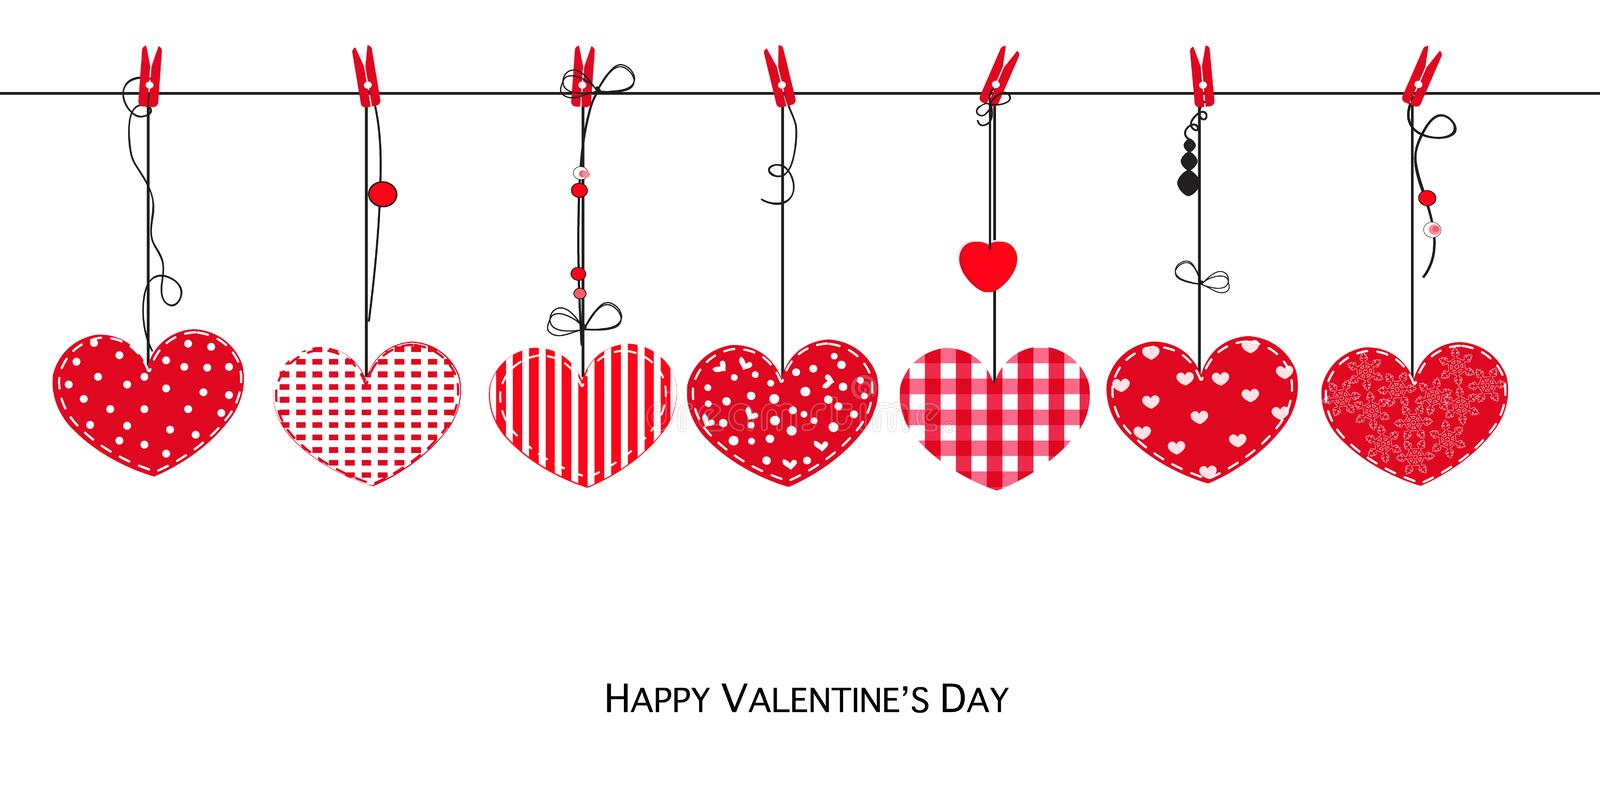 Happy Valentines Day Hearts Gif